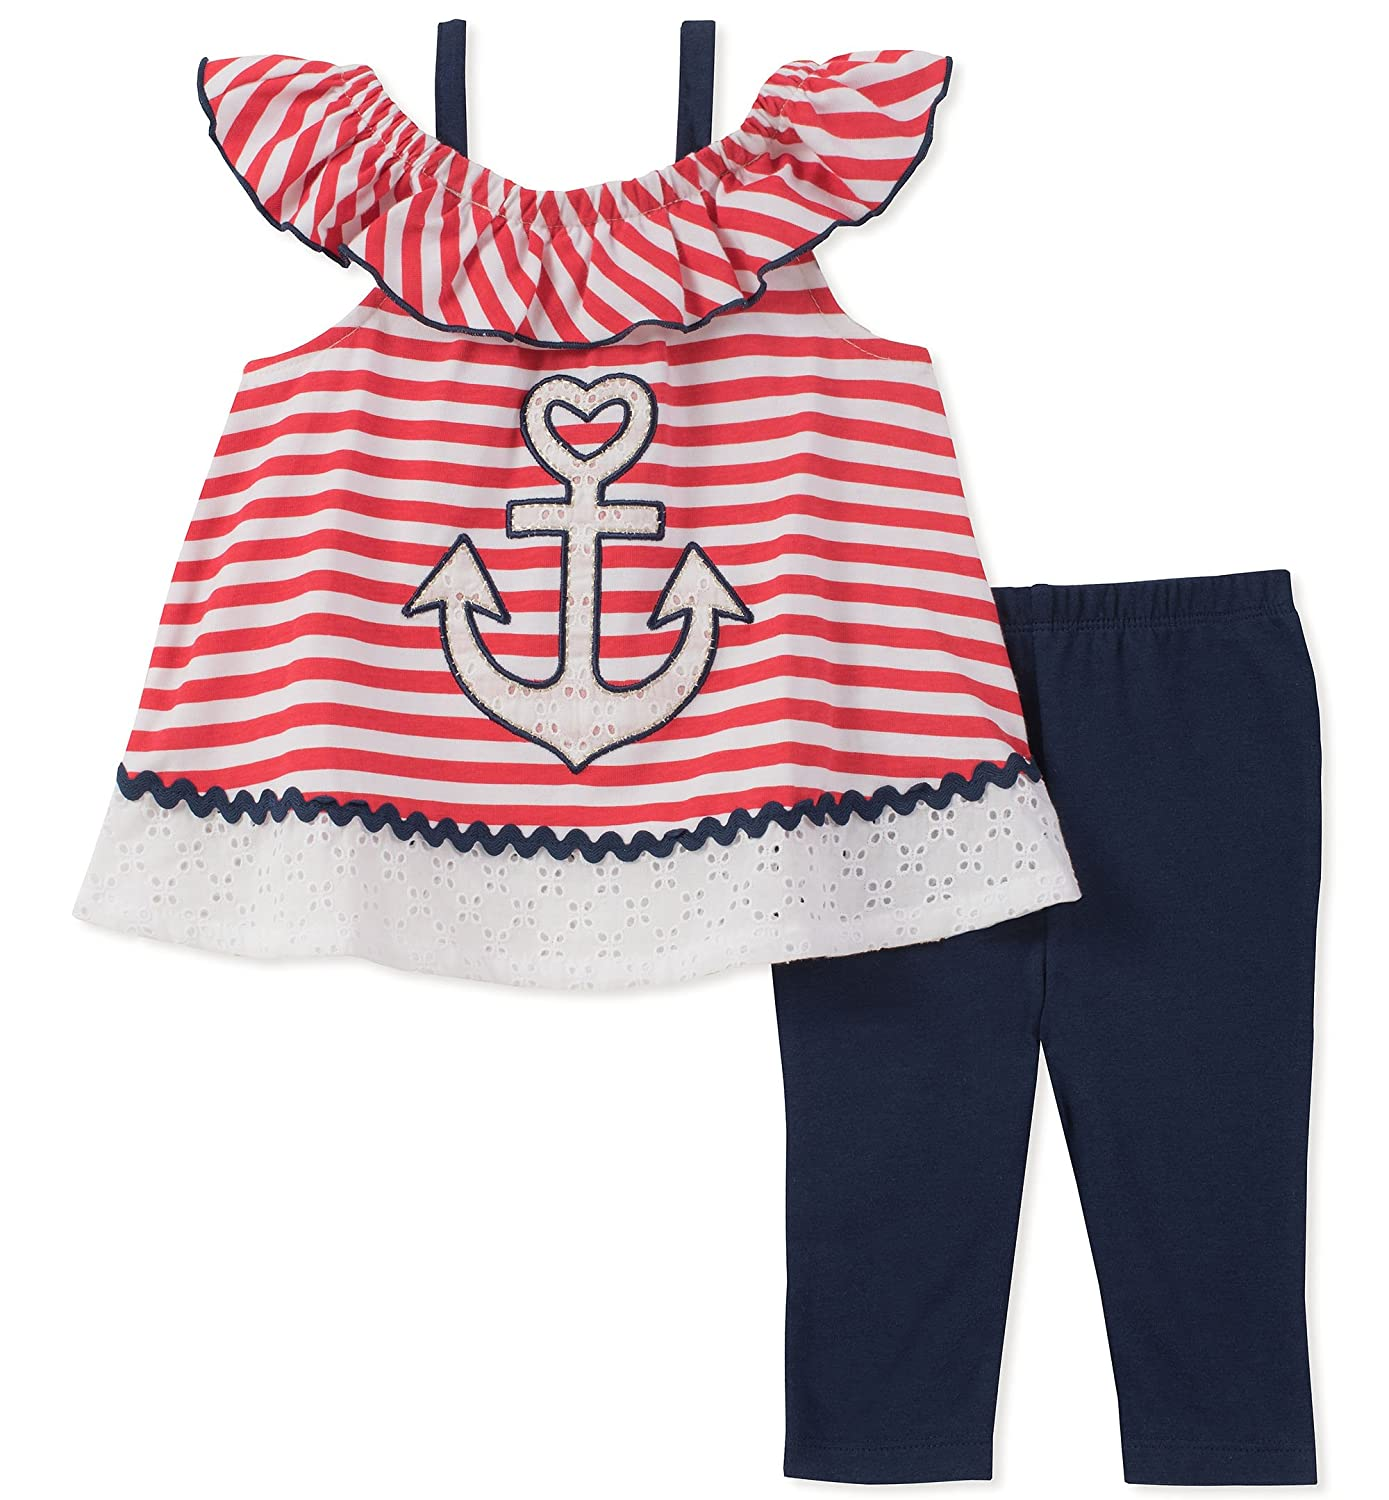 Kids Headquarters Girls' Tunic Set-Capsleeves